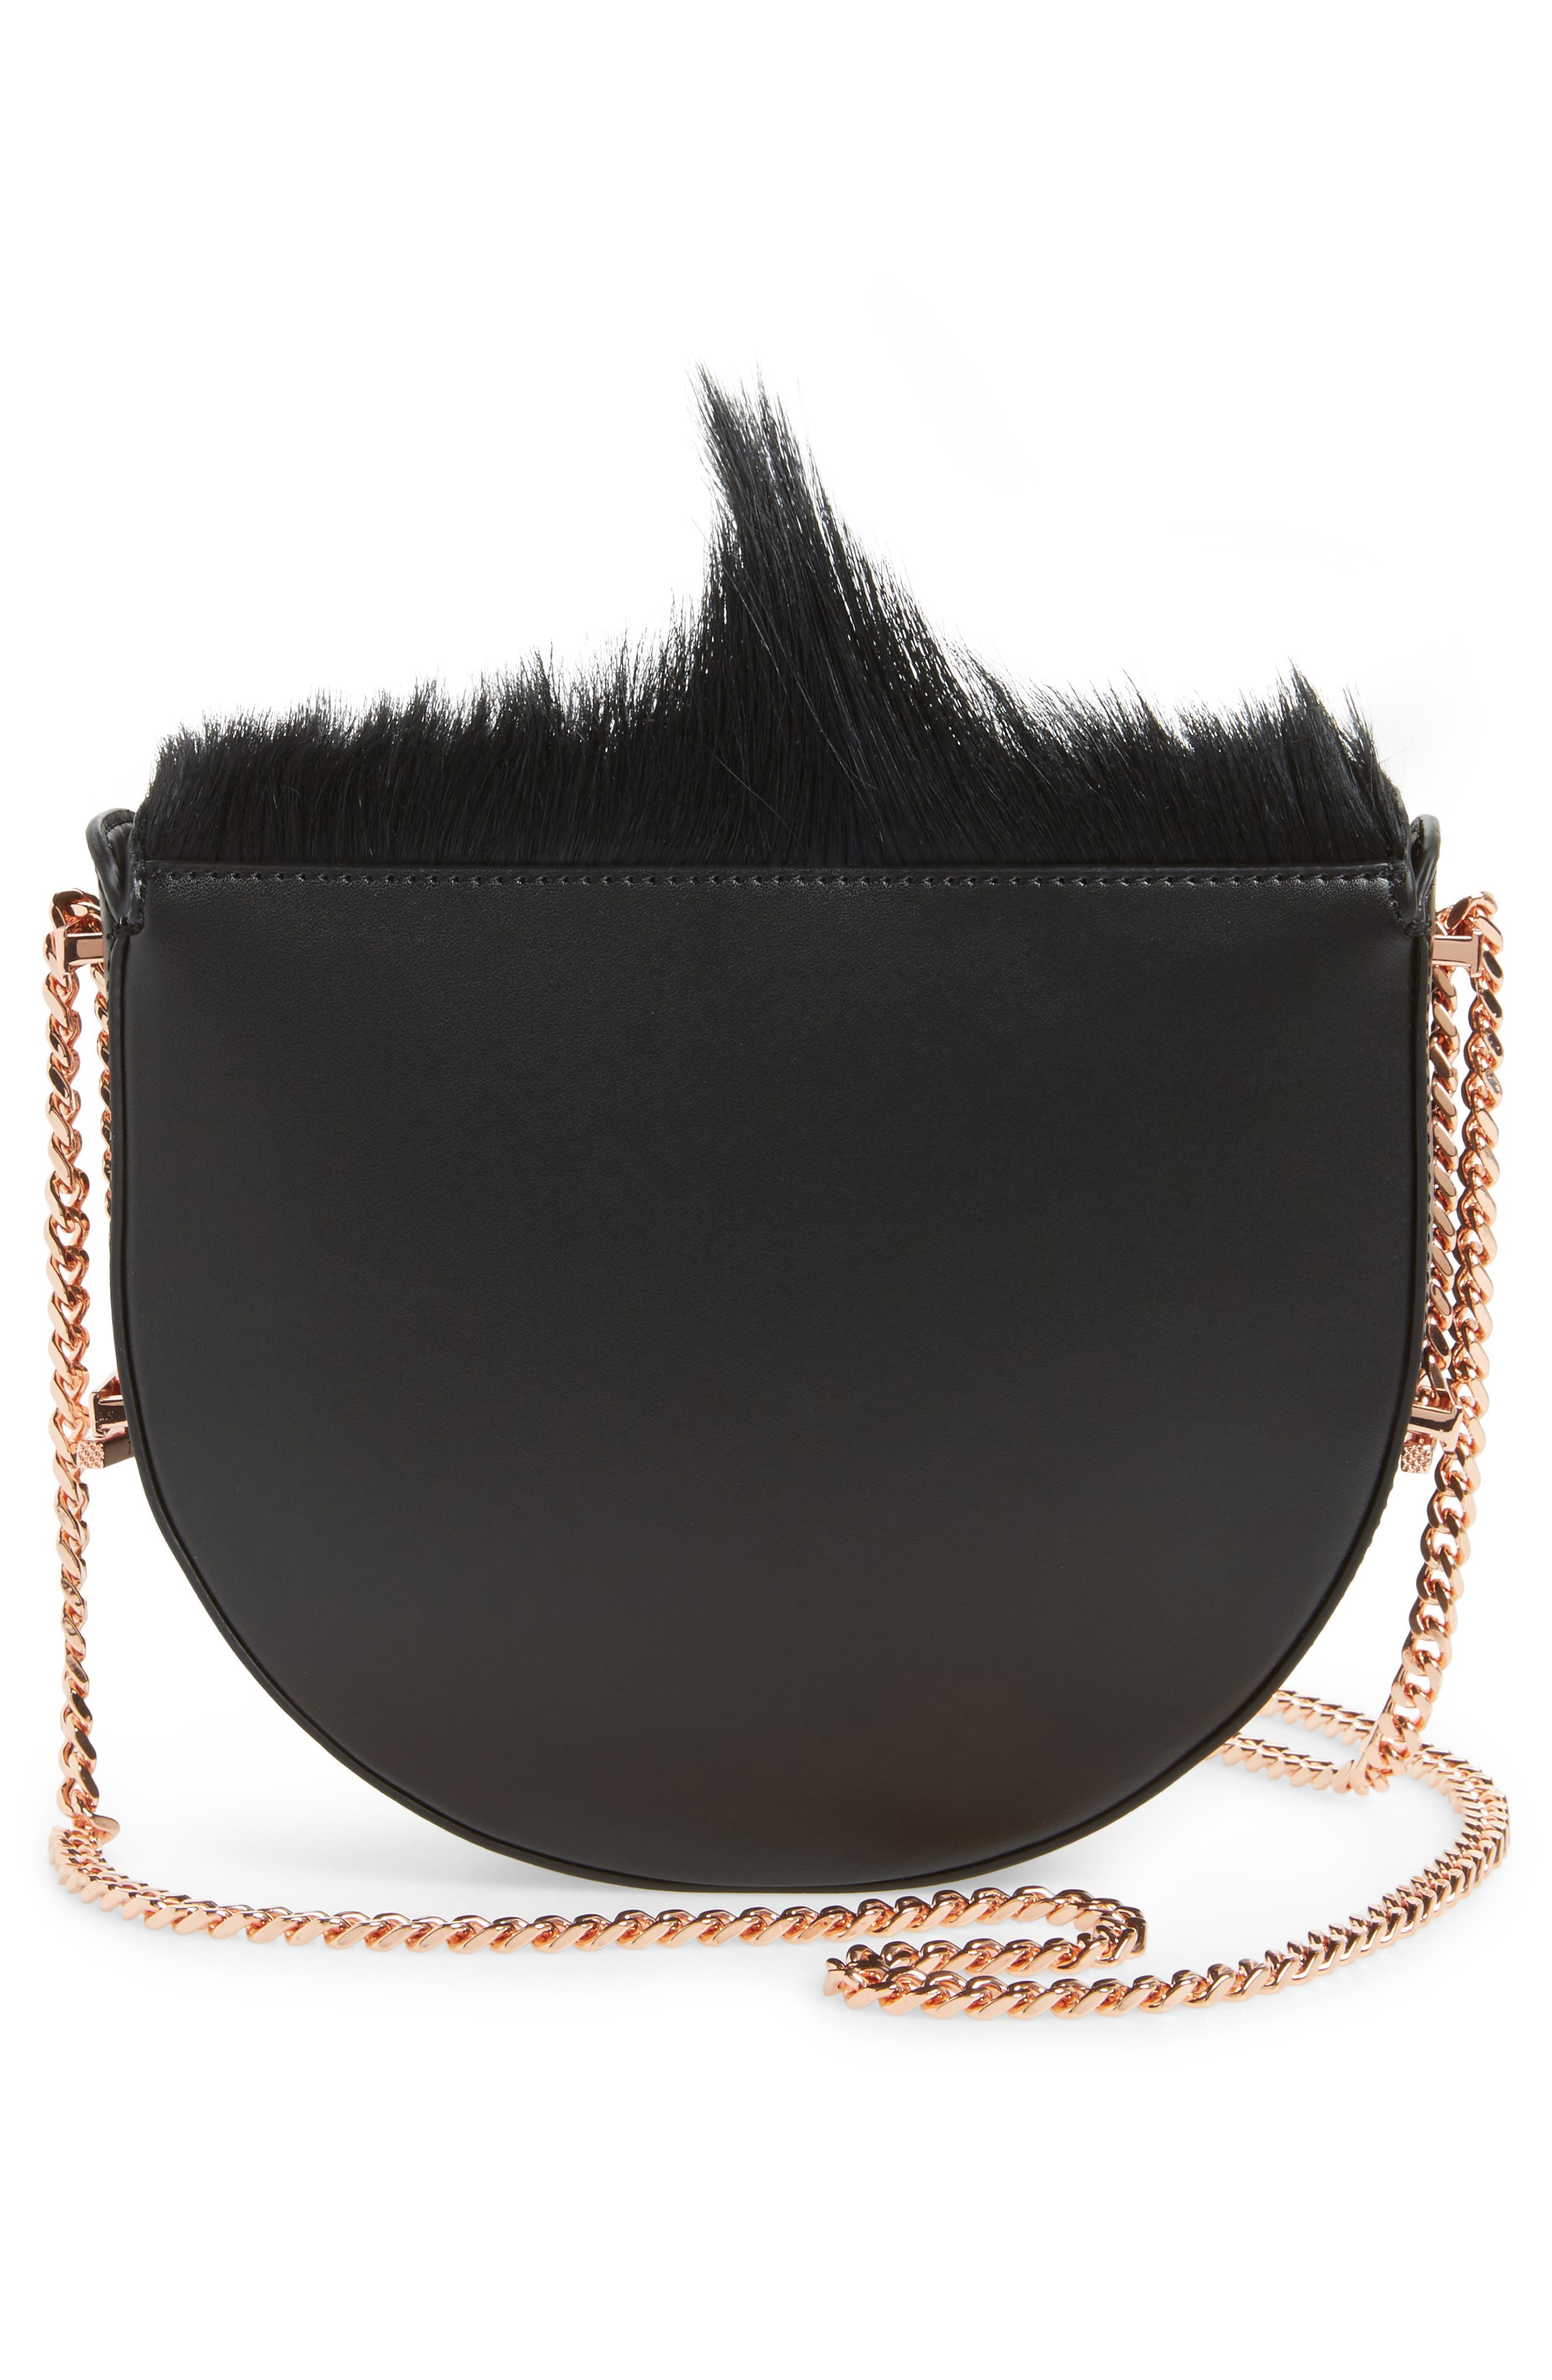 Alisonn Leather & Genuine Springbok Fur Saddle Bag,                             Alternate thumbnail 3, color,                             001